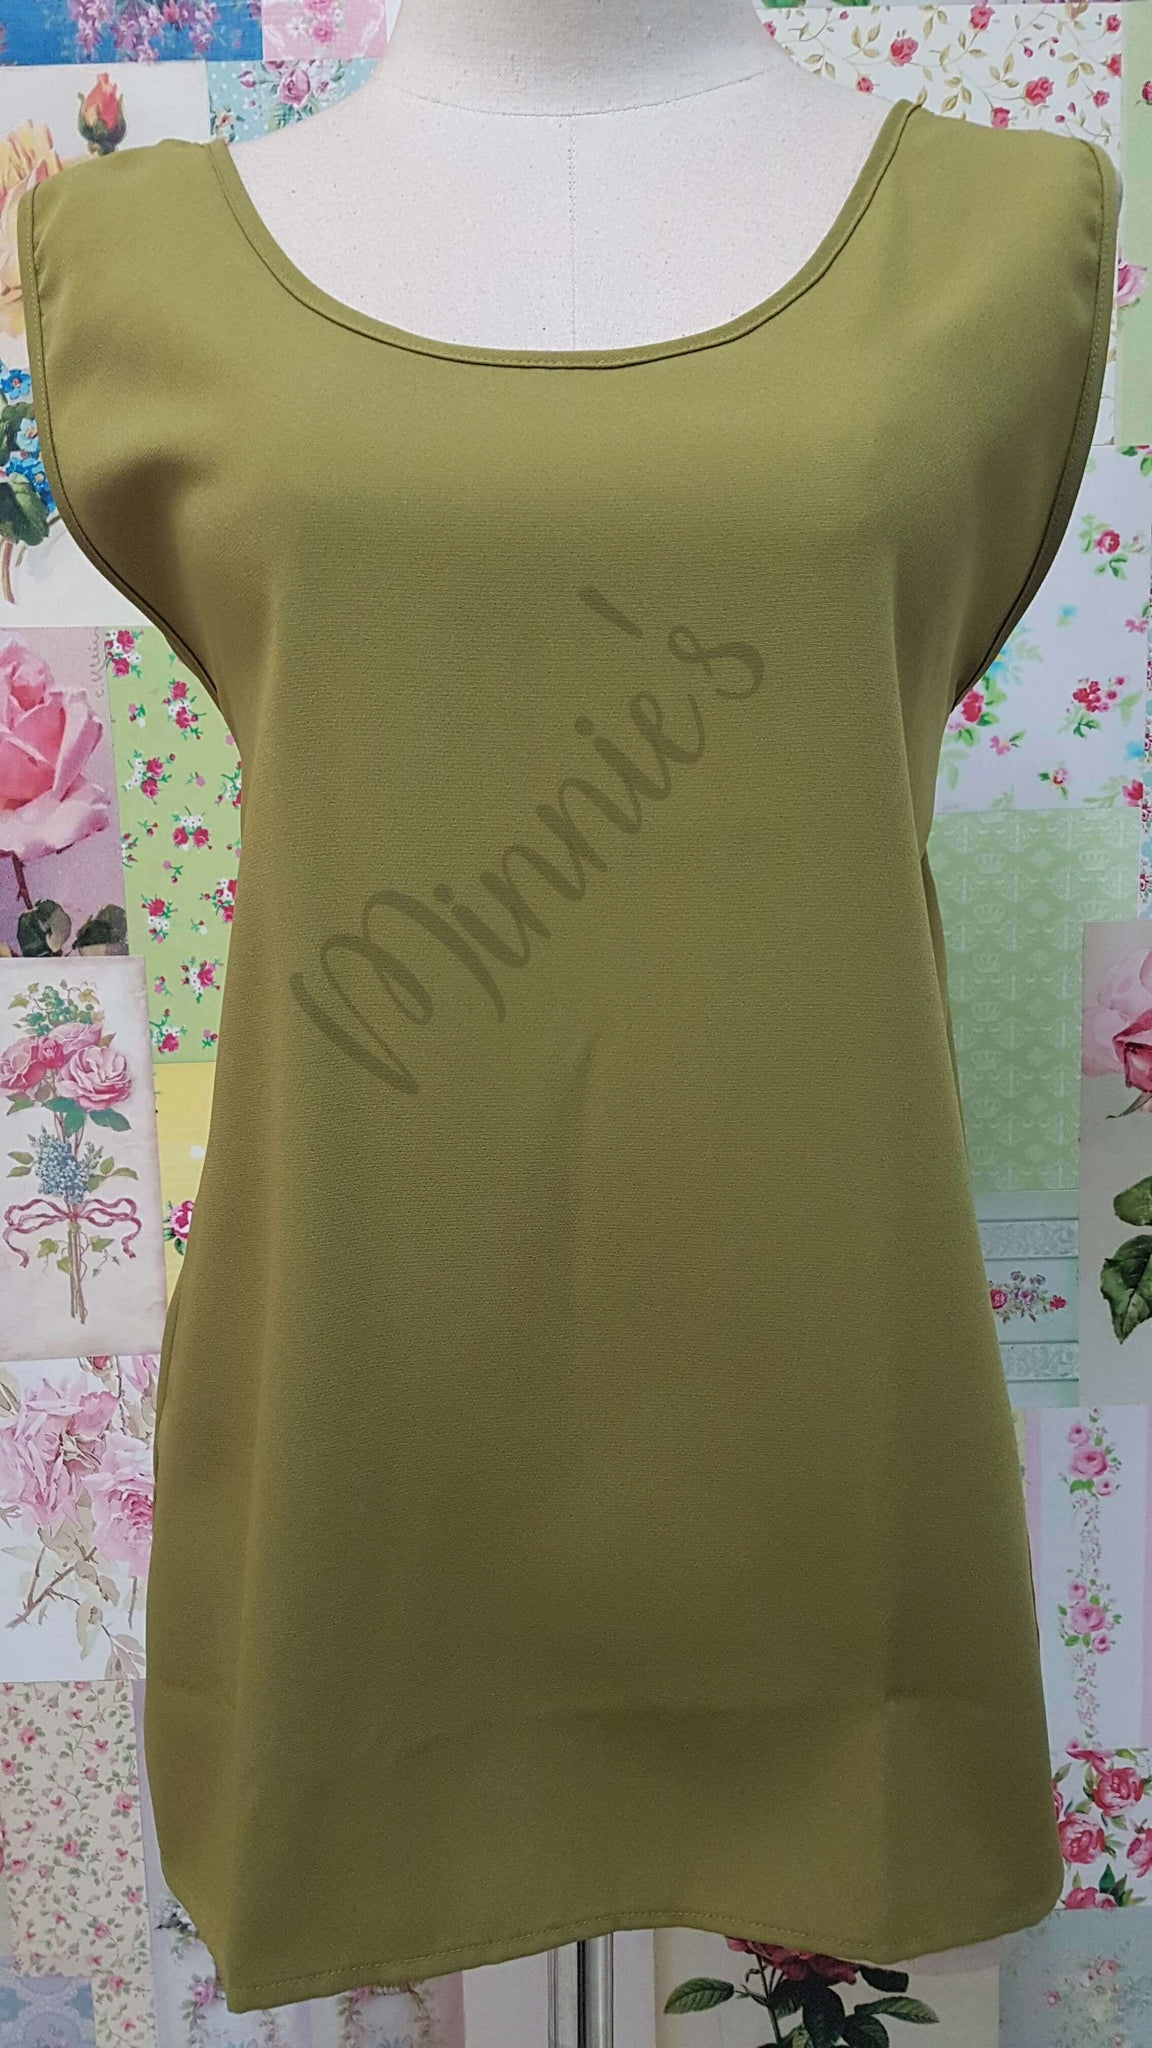 Olive Green Top BK0491